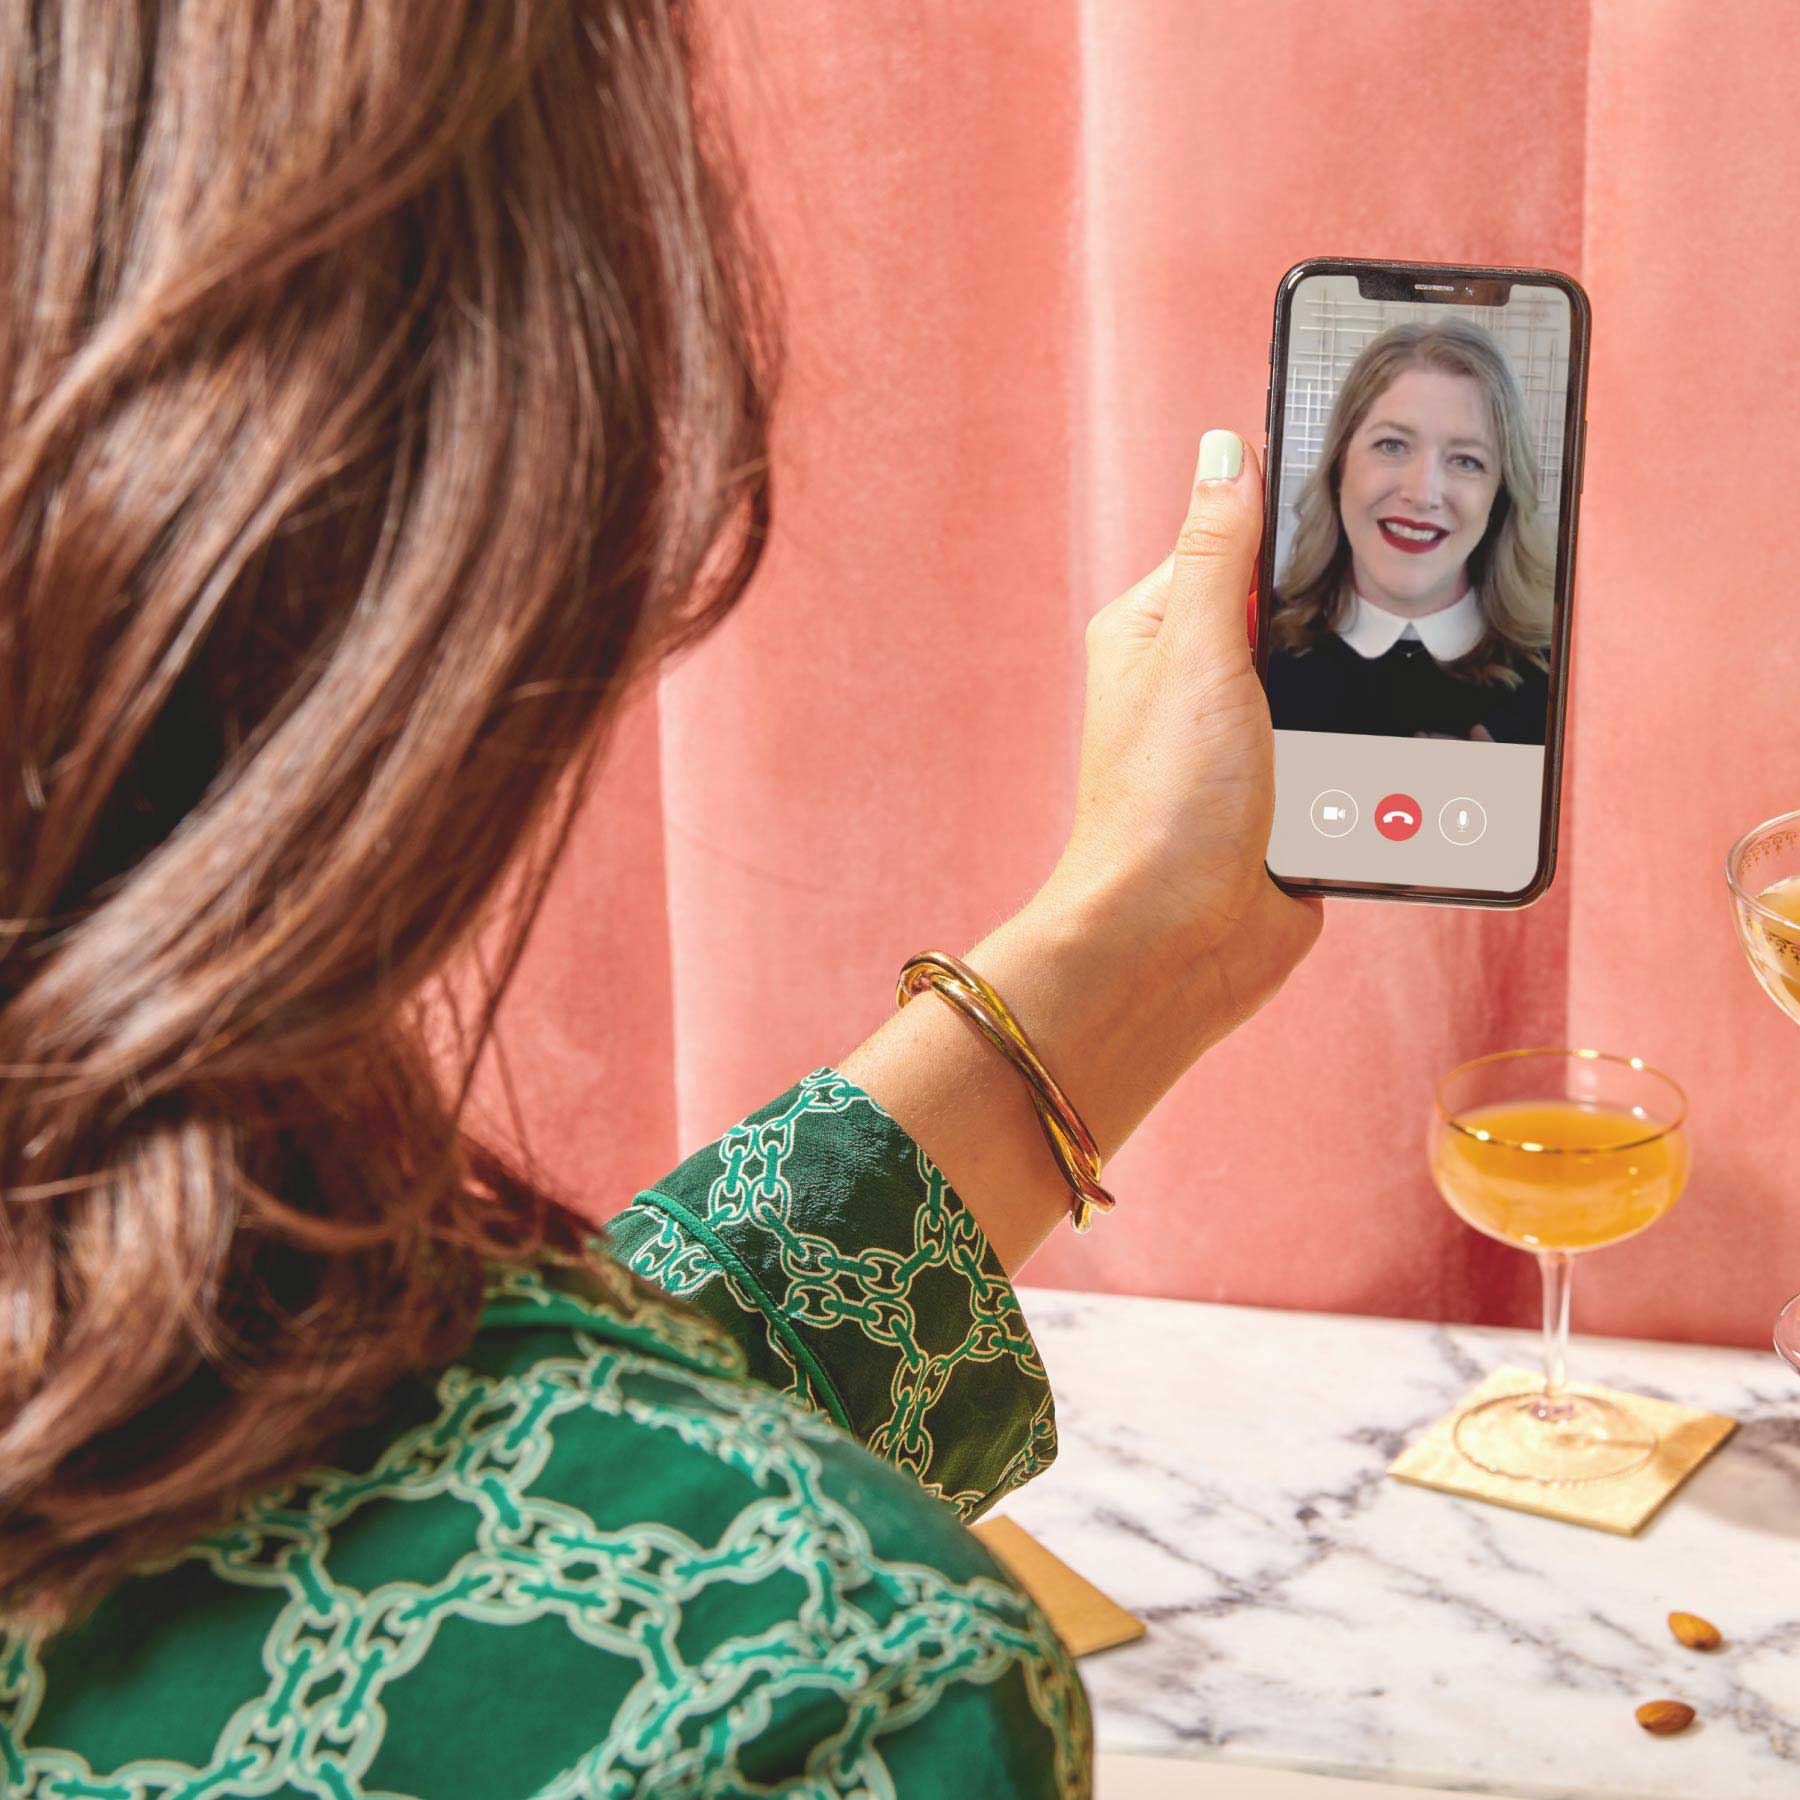 woman looking at phone with money coach on screen